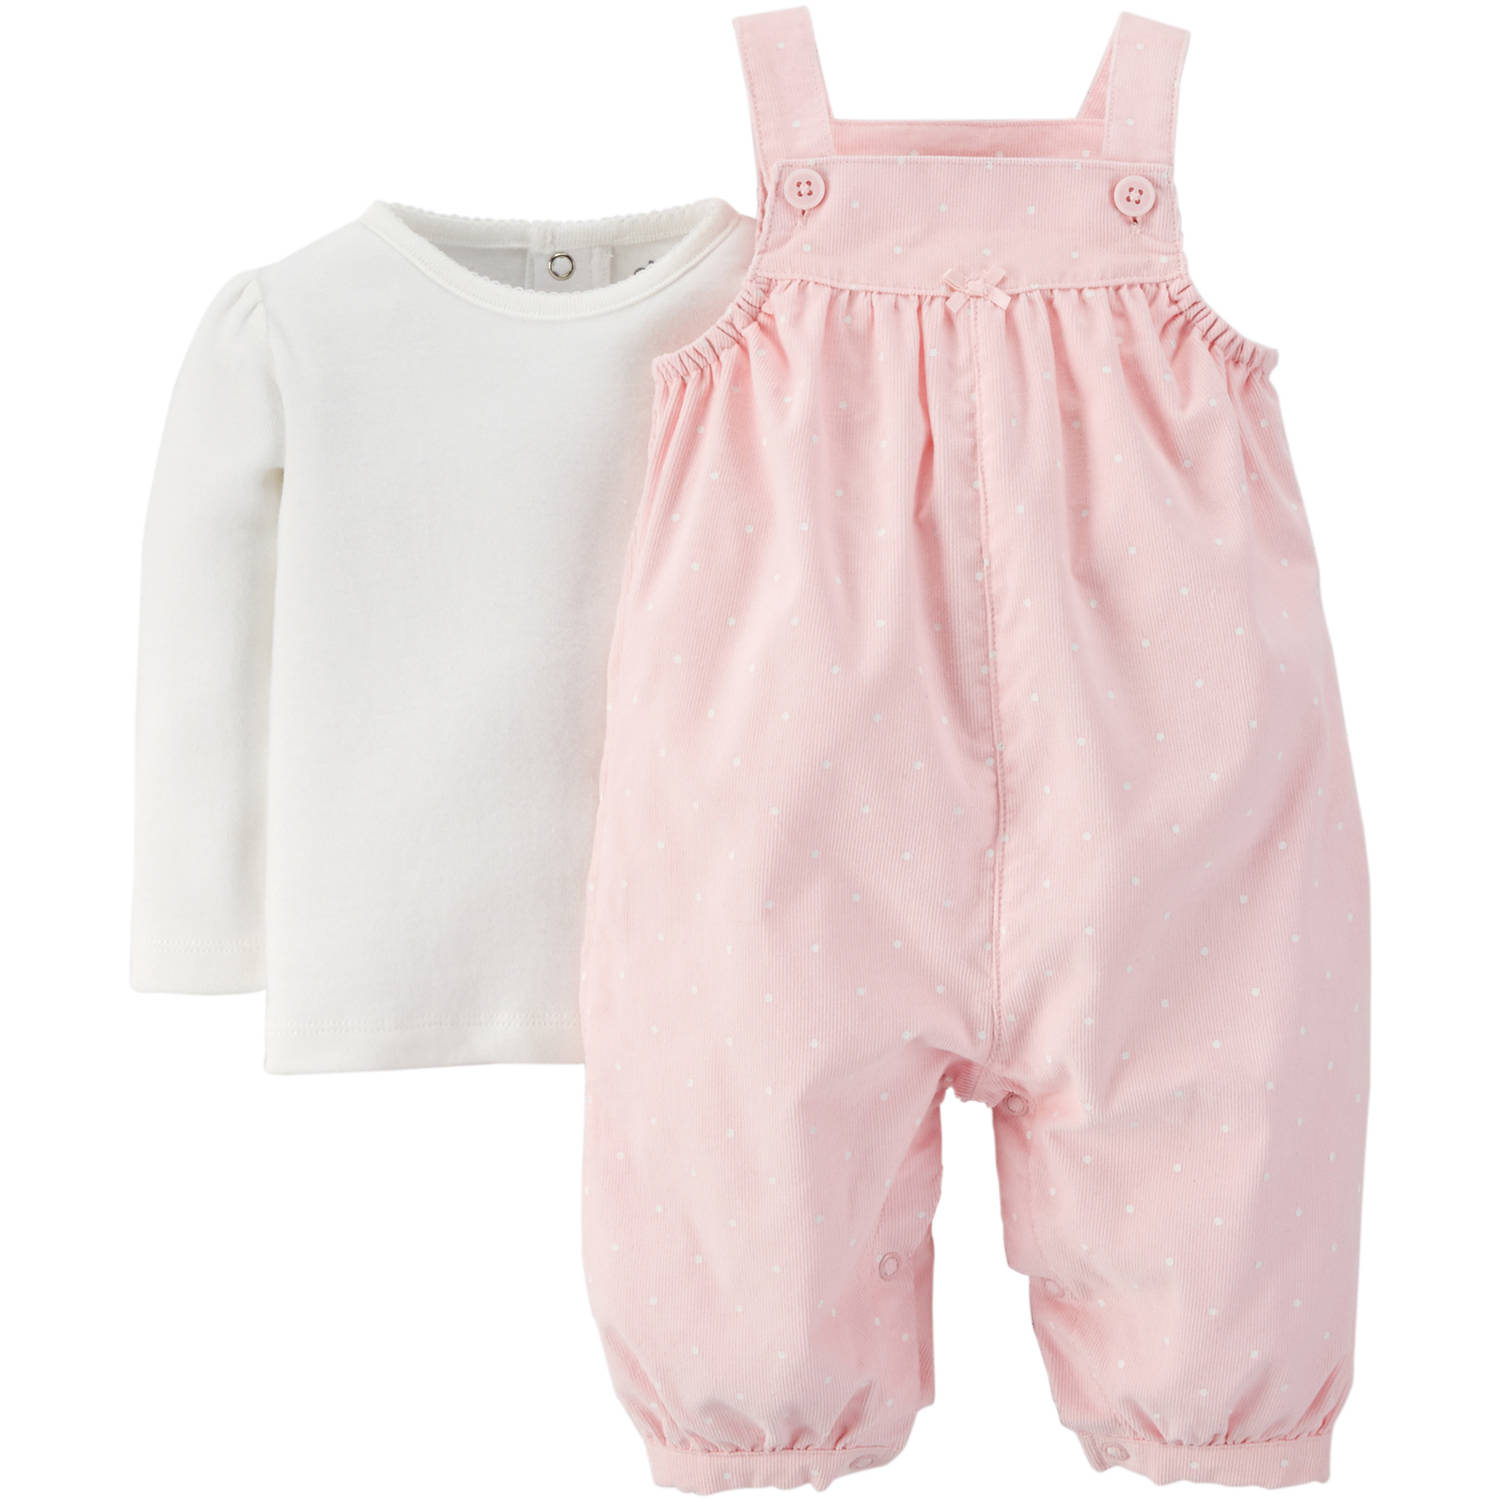 Newborn Baby Girl Shirt and Overalls Outfit Set Walmart